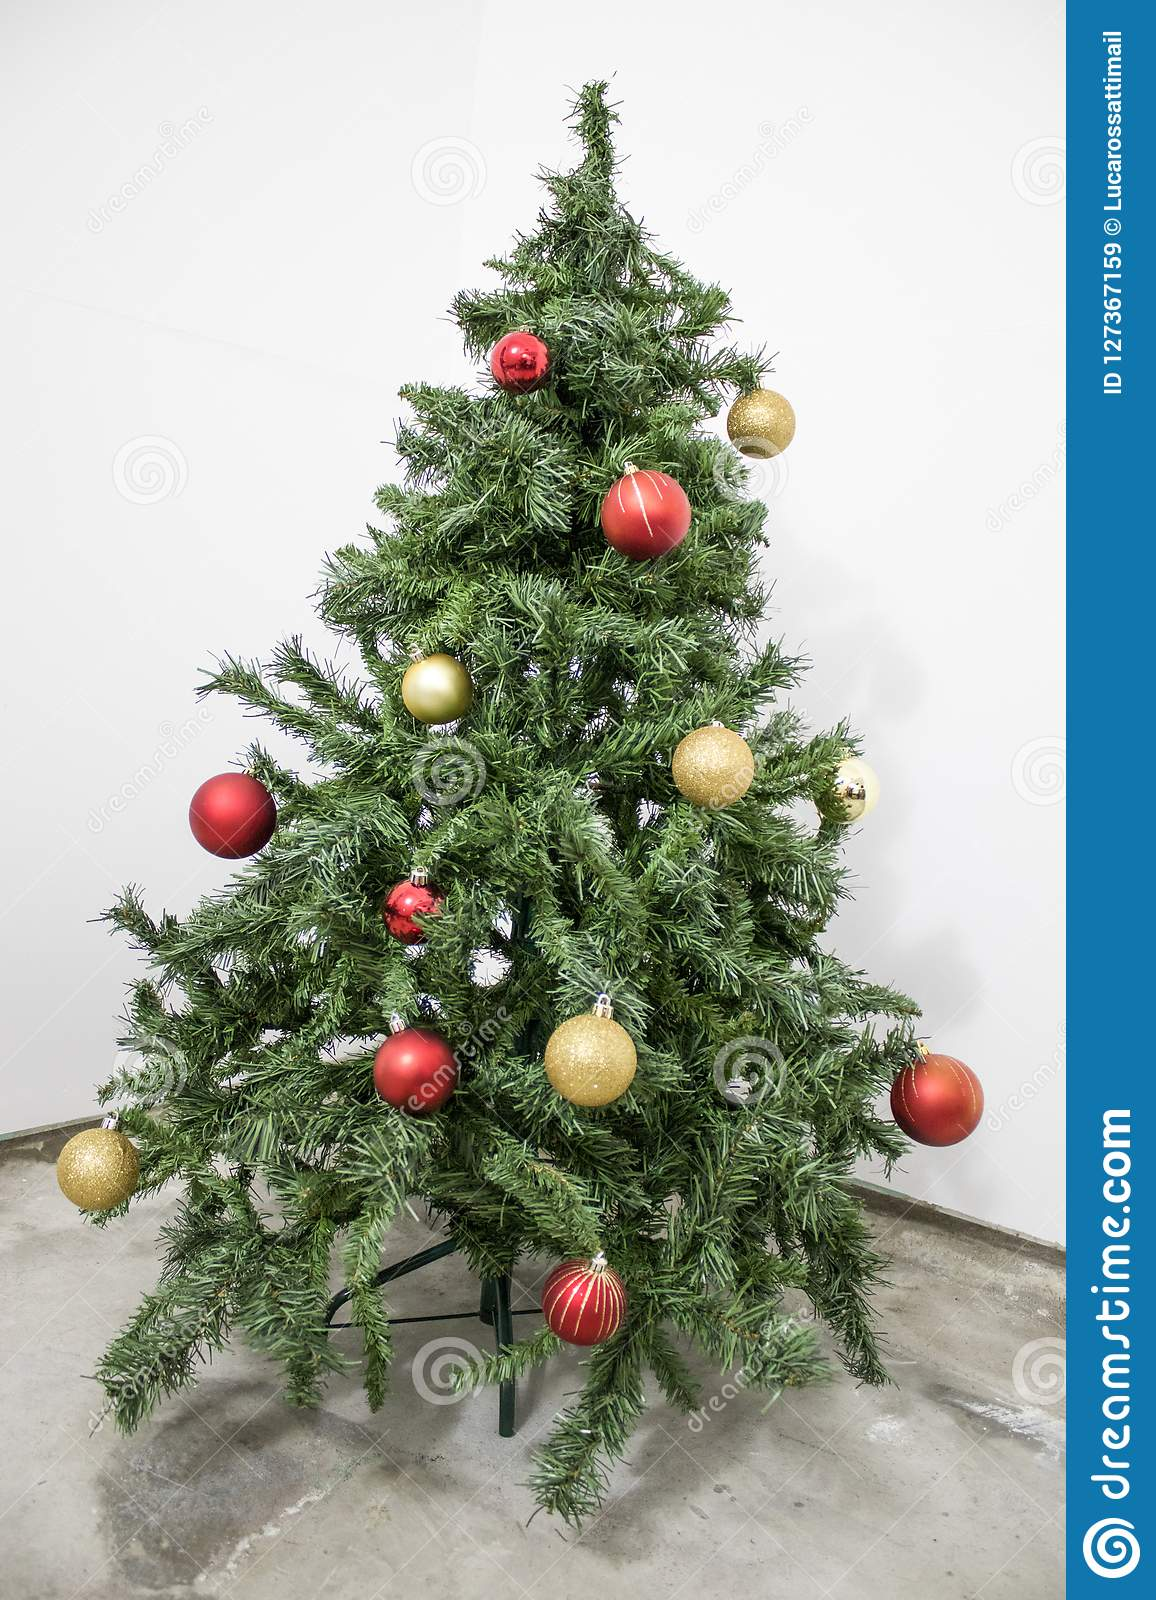 Detailed Green Christmas Tree With Red And Gold Decorations In A Stock Image Image Of Lights Ornament 127367159